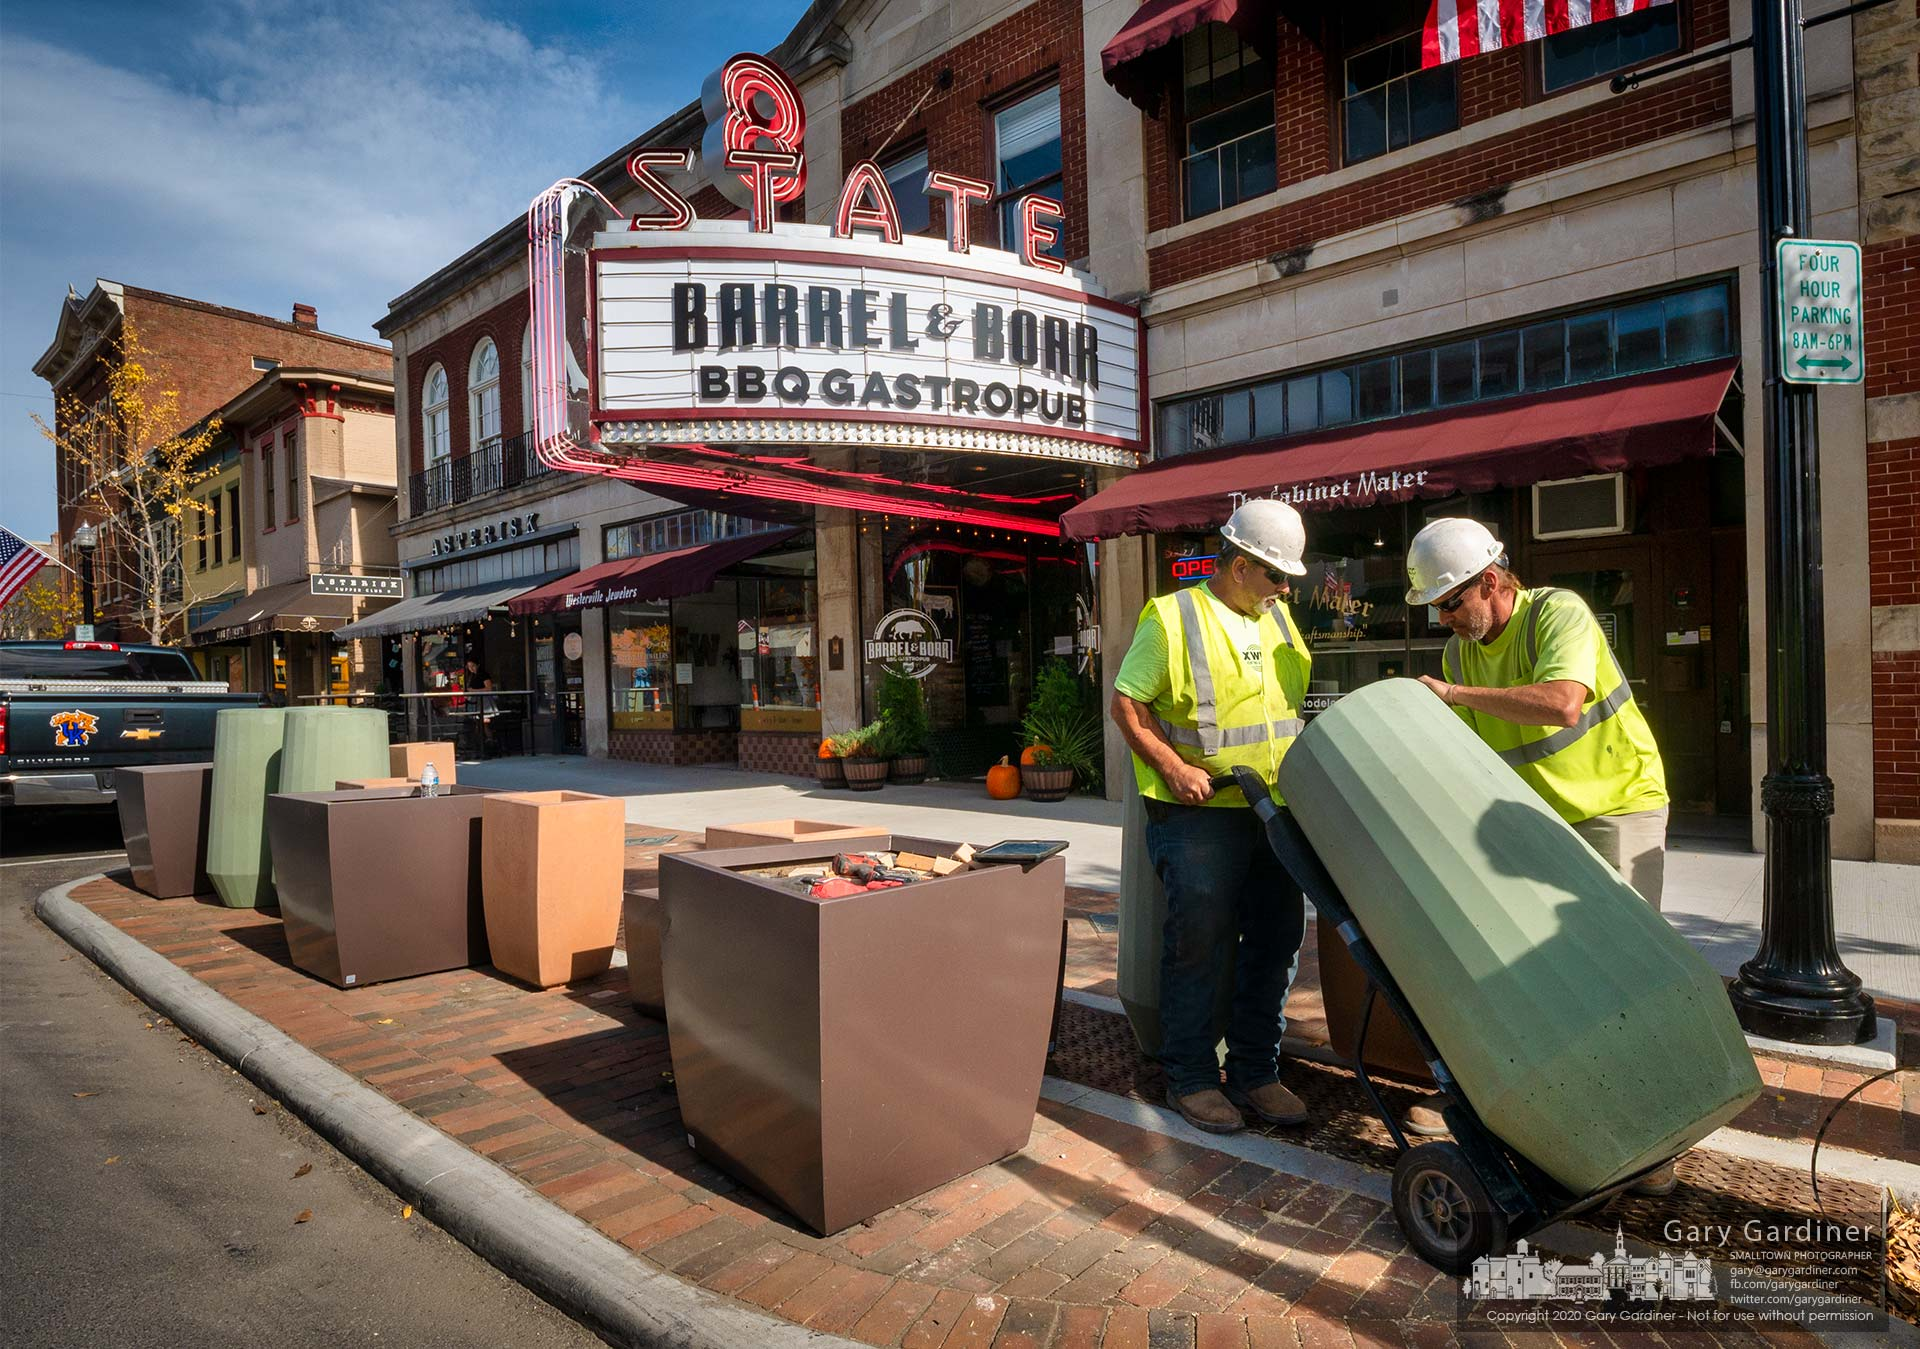 Workers place a variety of shaped and sized planters onto the bumpout in front of Barrel & Boar Restaurant to act as bollards to prevent vehicles from running into the marquee. My Final Photo for Nov. 5, 2020.